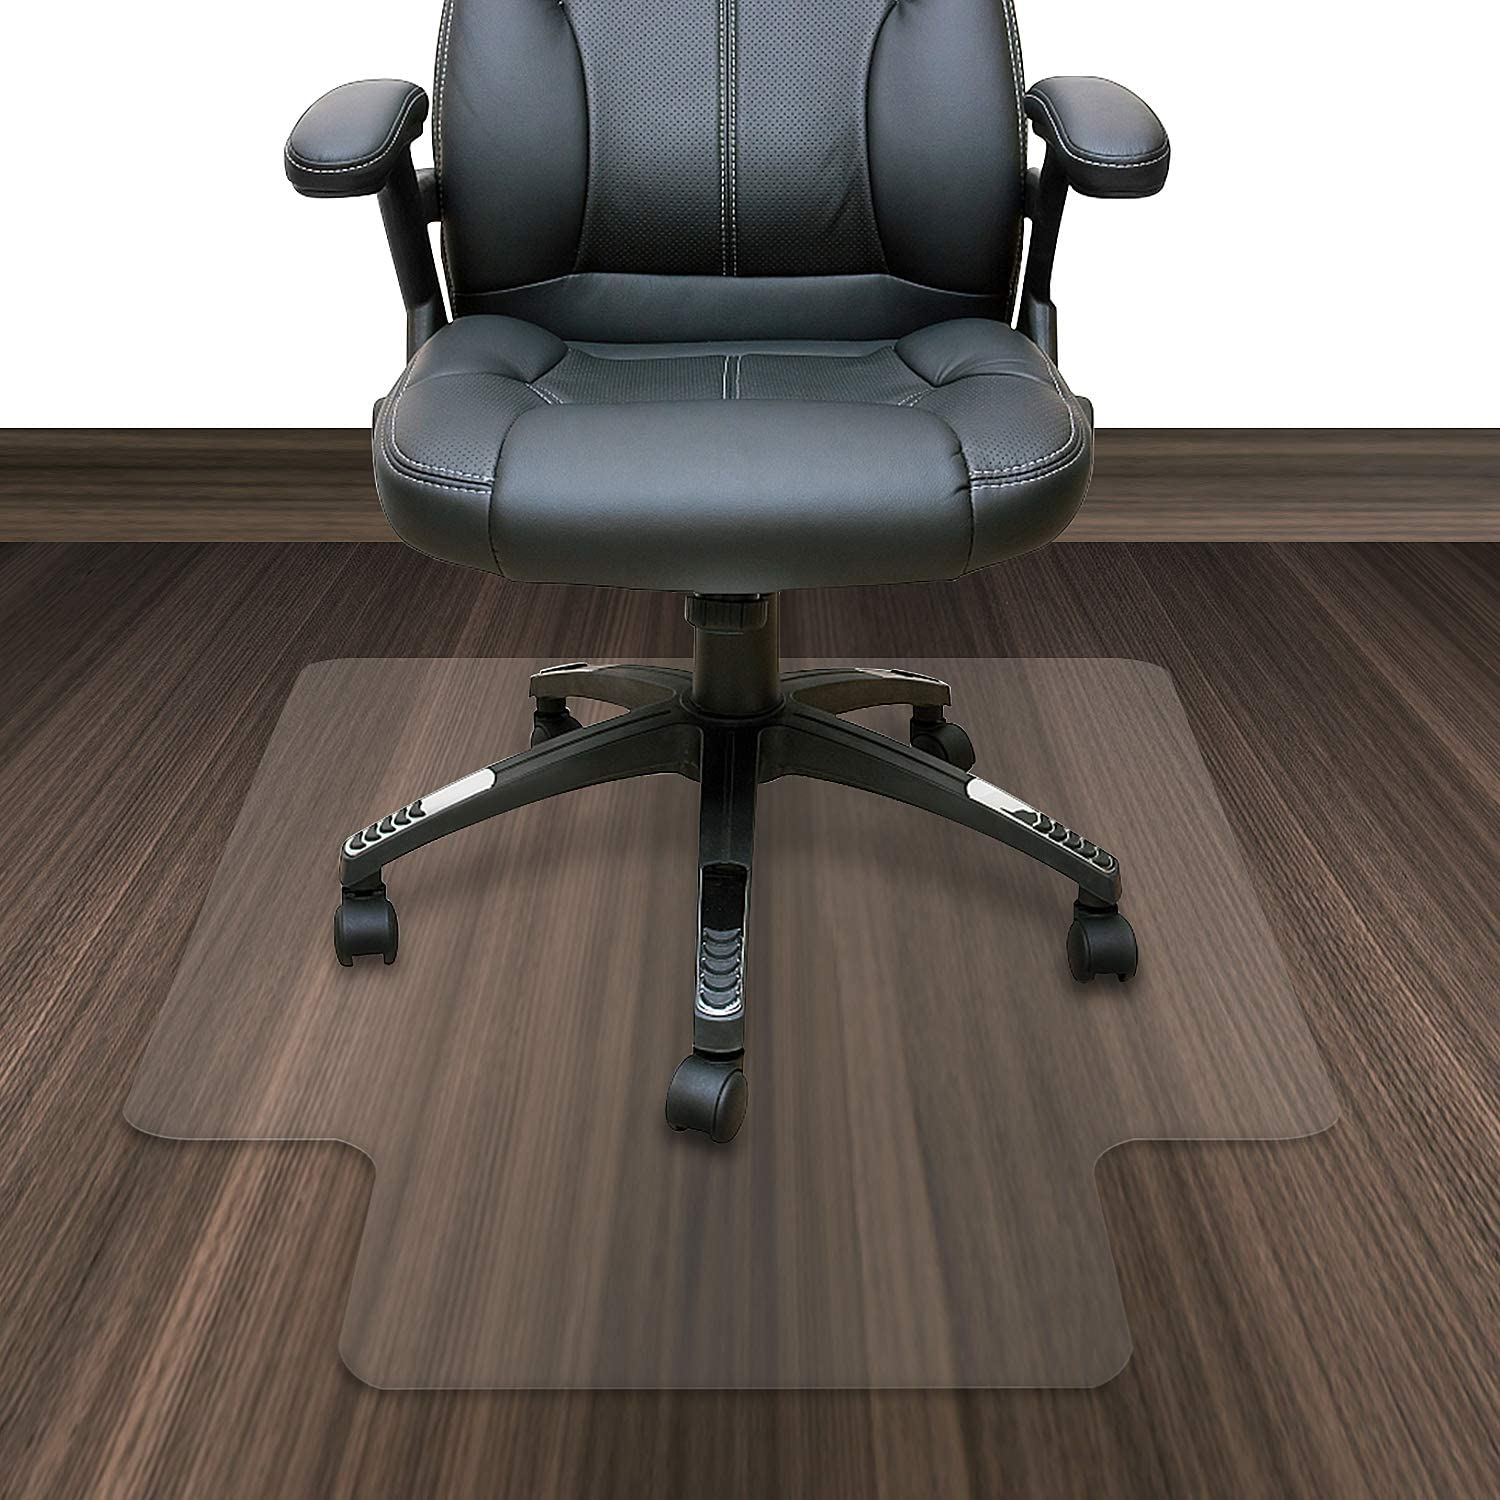 Azadx Transparent Chair Mat, Computer Chair Hardwood Floor Protector for Office and Home, 36